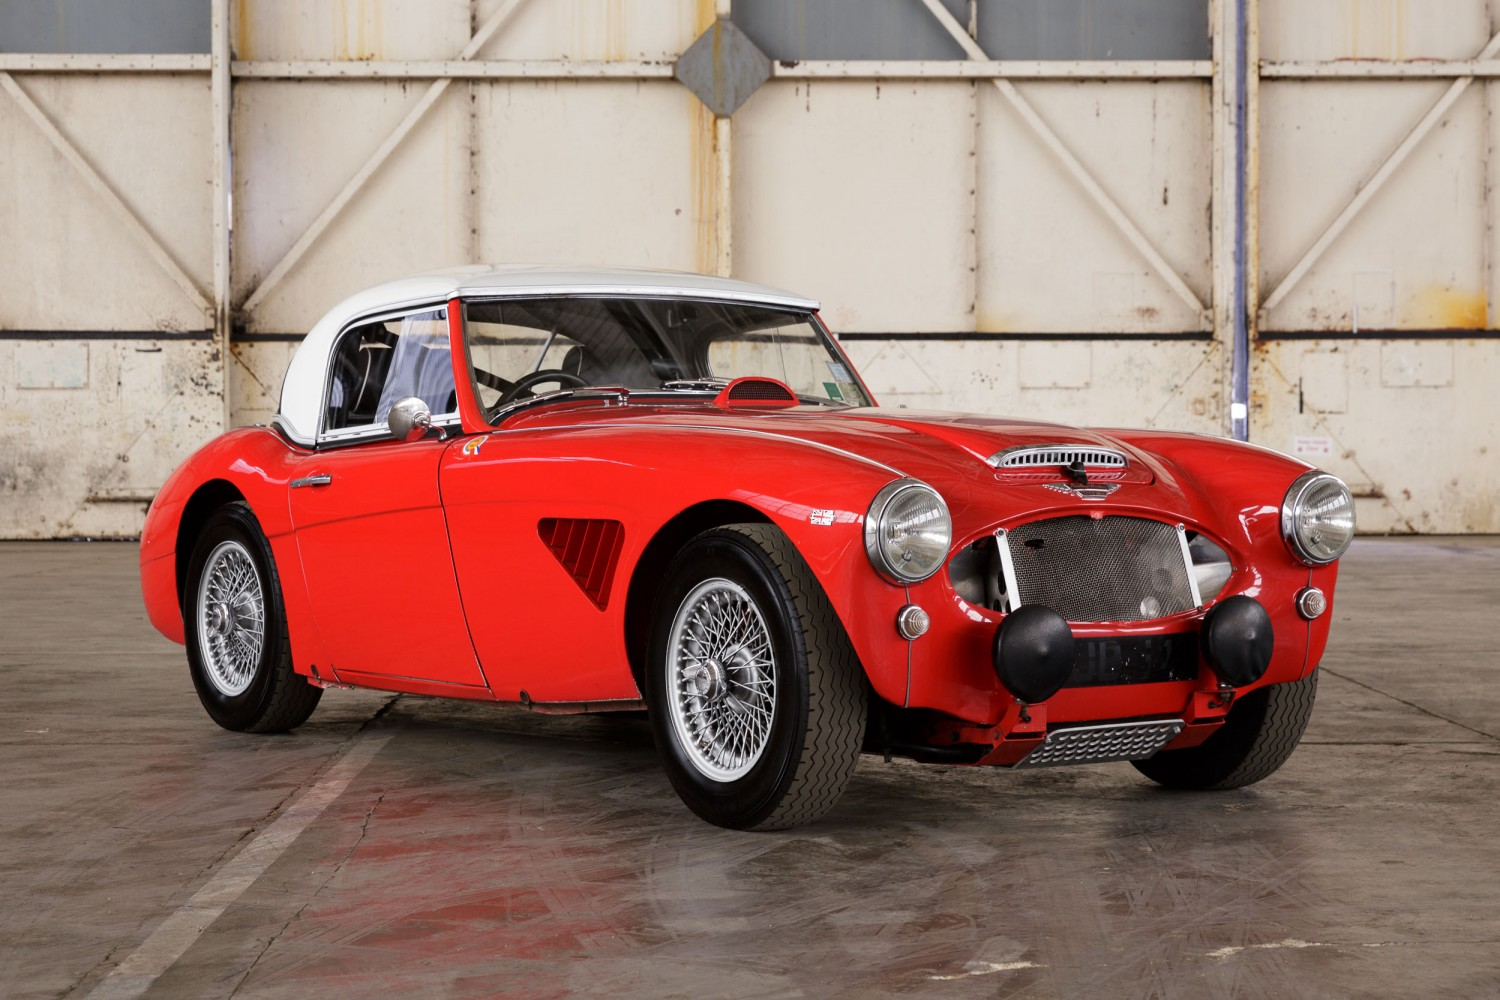 1961 Austin Healey 3000 Rally Car » Pendine Historic Cars